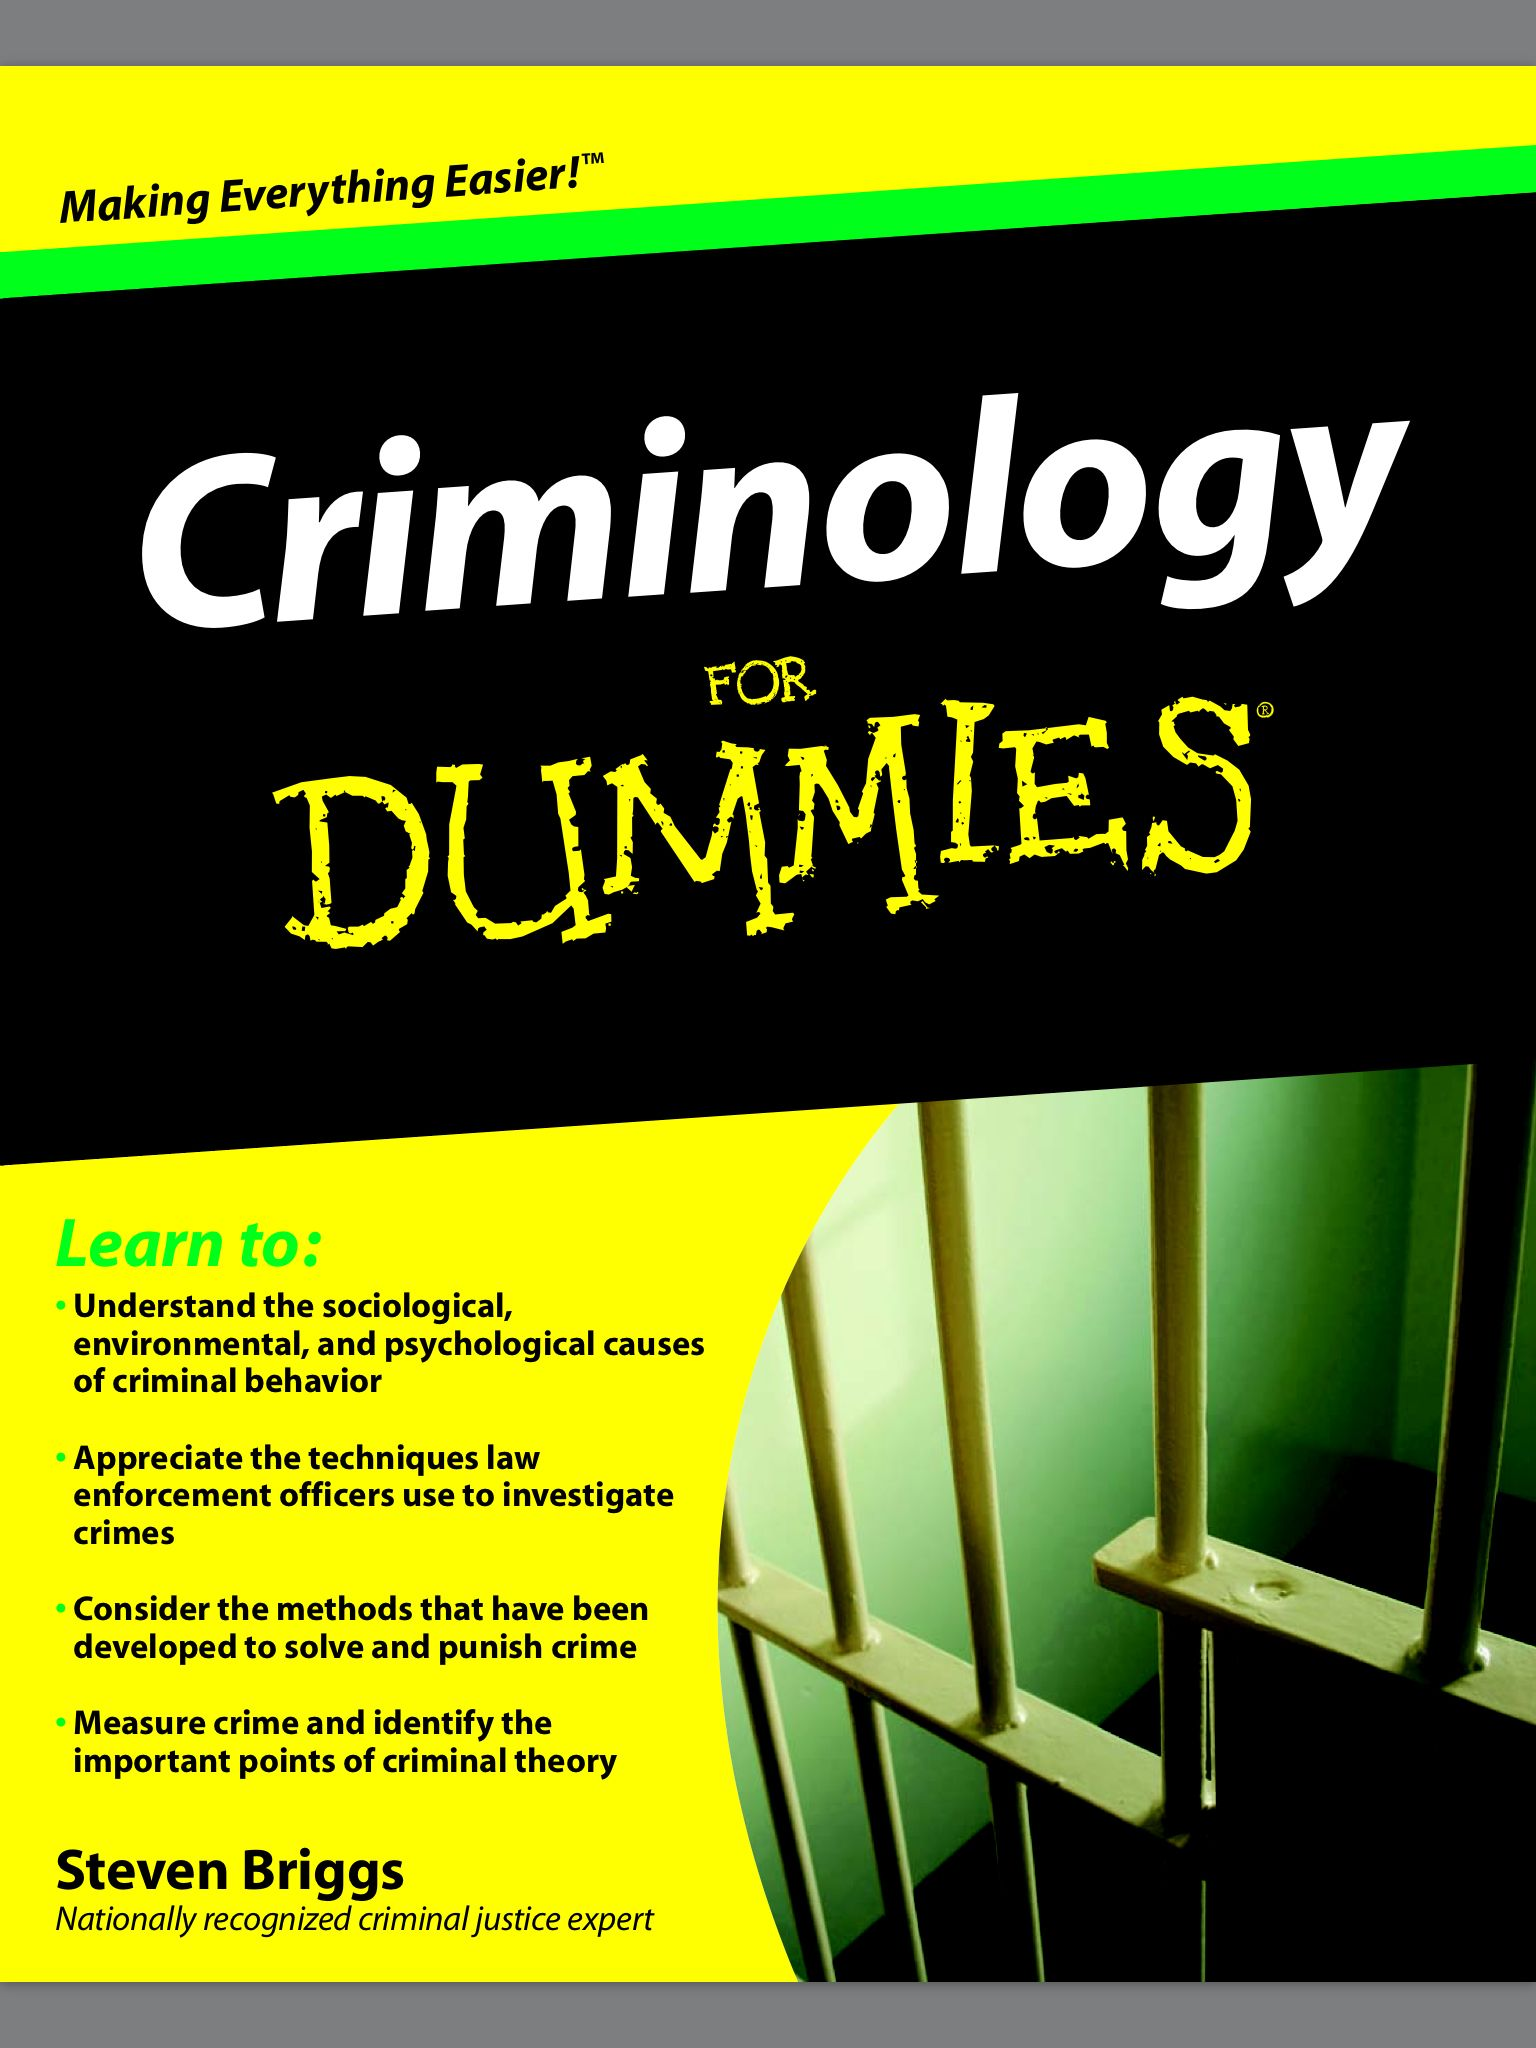 Criminology Book Criminology Criminal Psychology Dummies Book